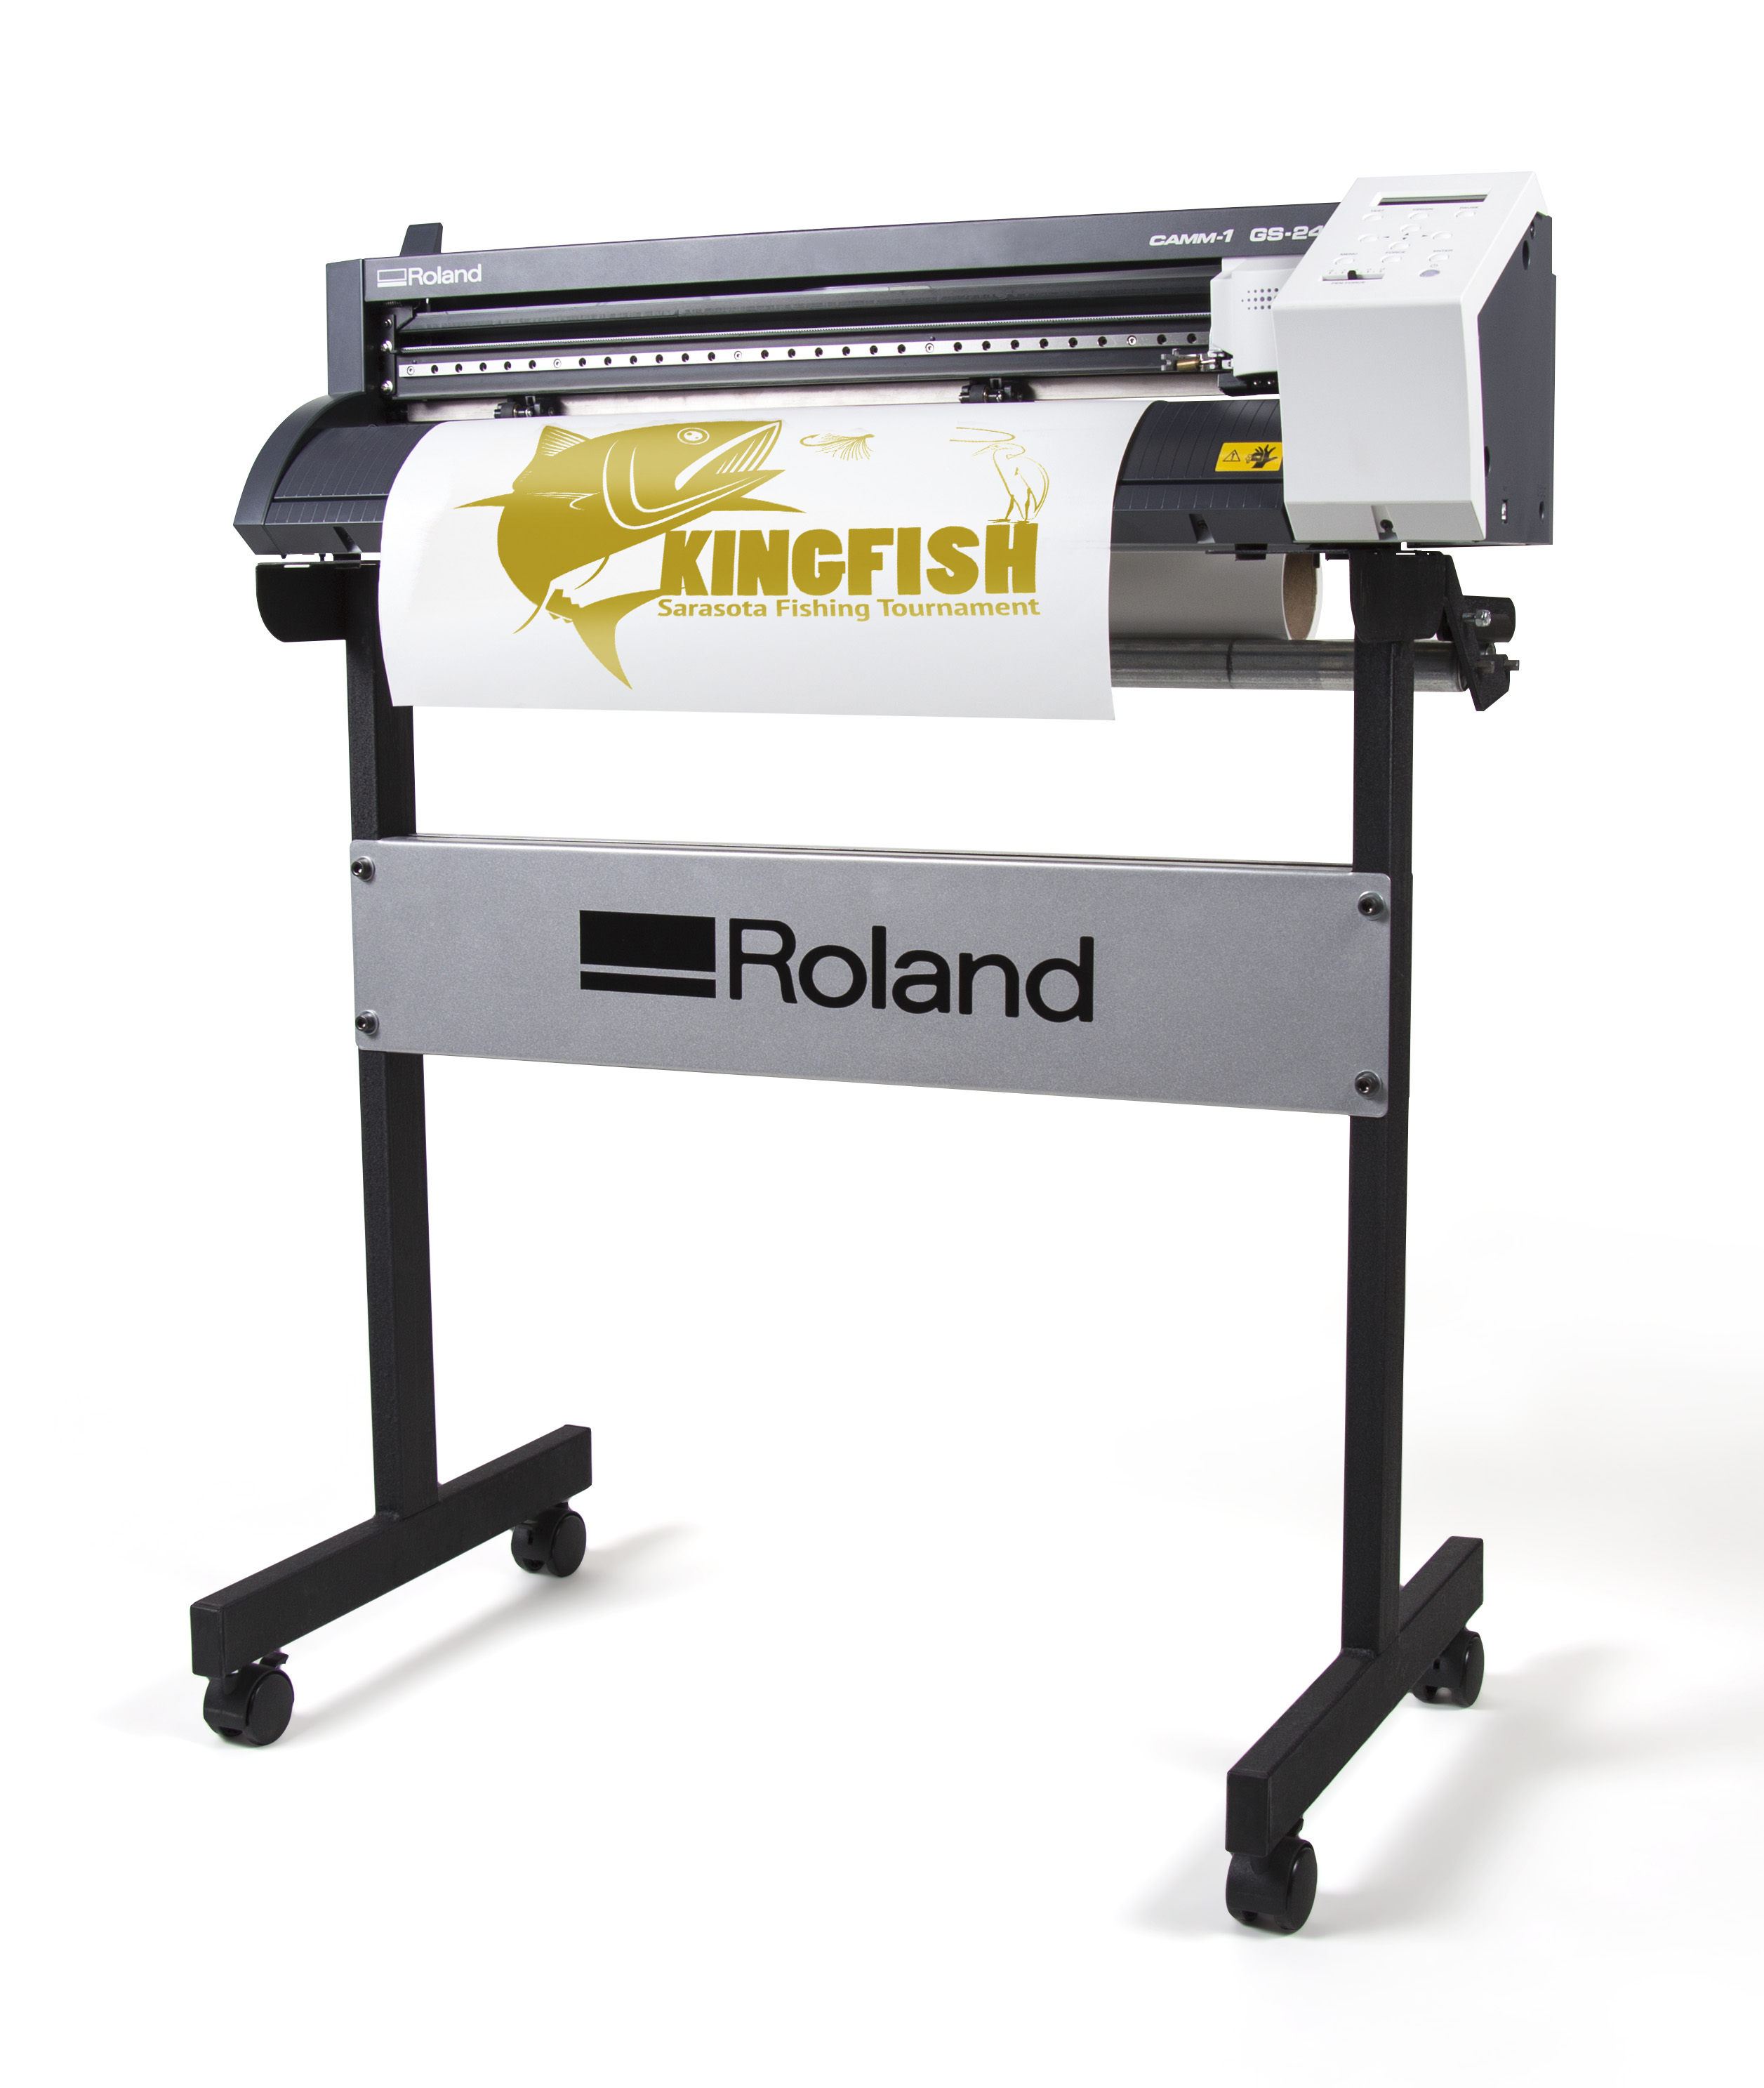 CAMM-1 GS-24 Vinyl Cutter with included stand